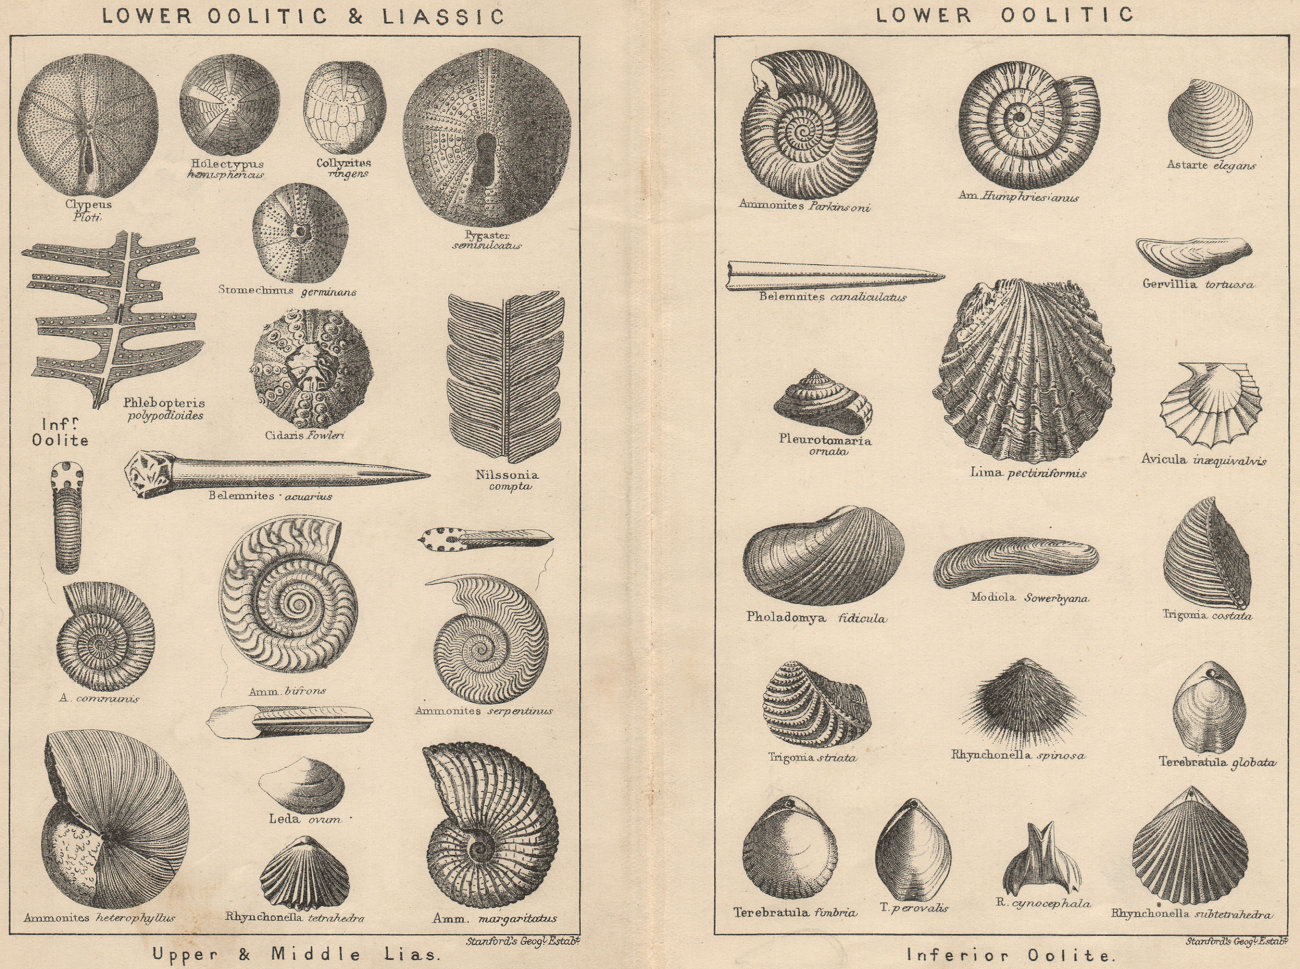 Associate Product BRITISH FOSSILS. Lower Oolitic & Liassic. Lower Oolitic. STANFORD 1913 print